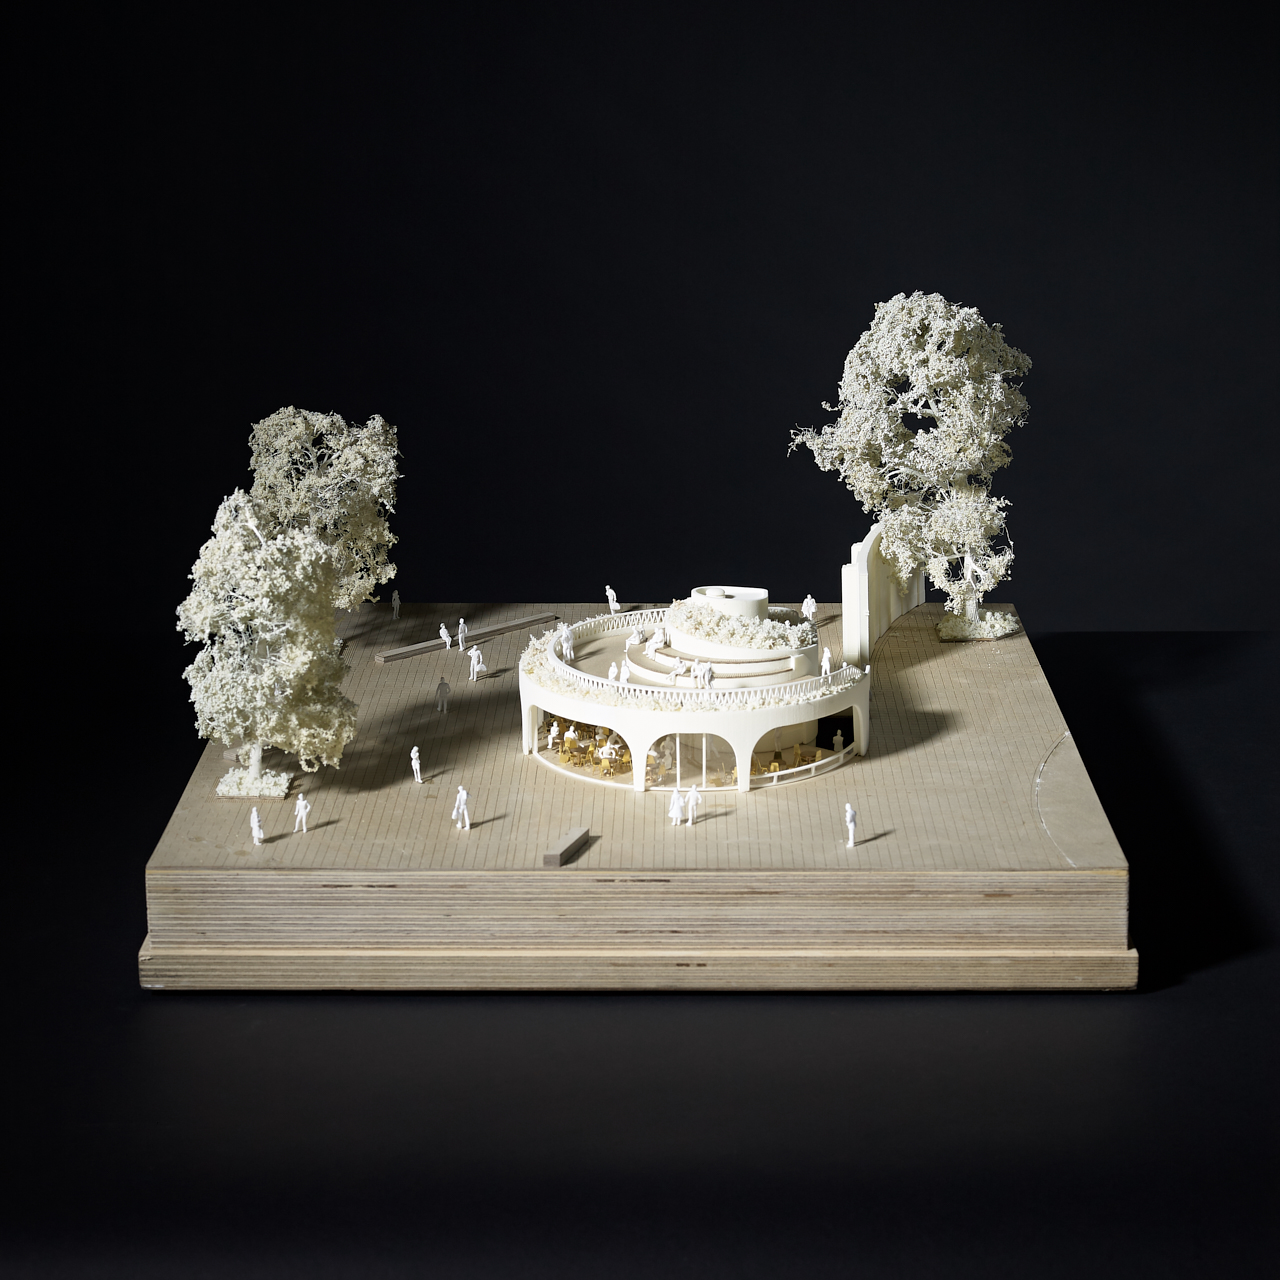 Duke of York Restaurant, architectural model